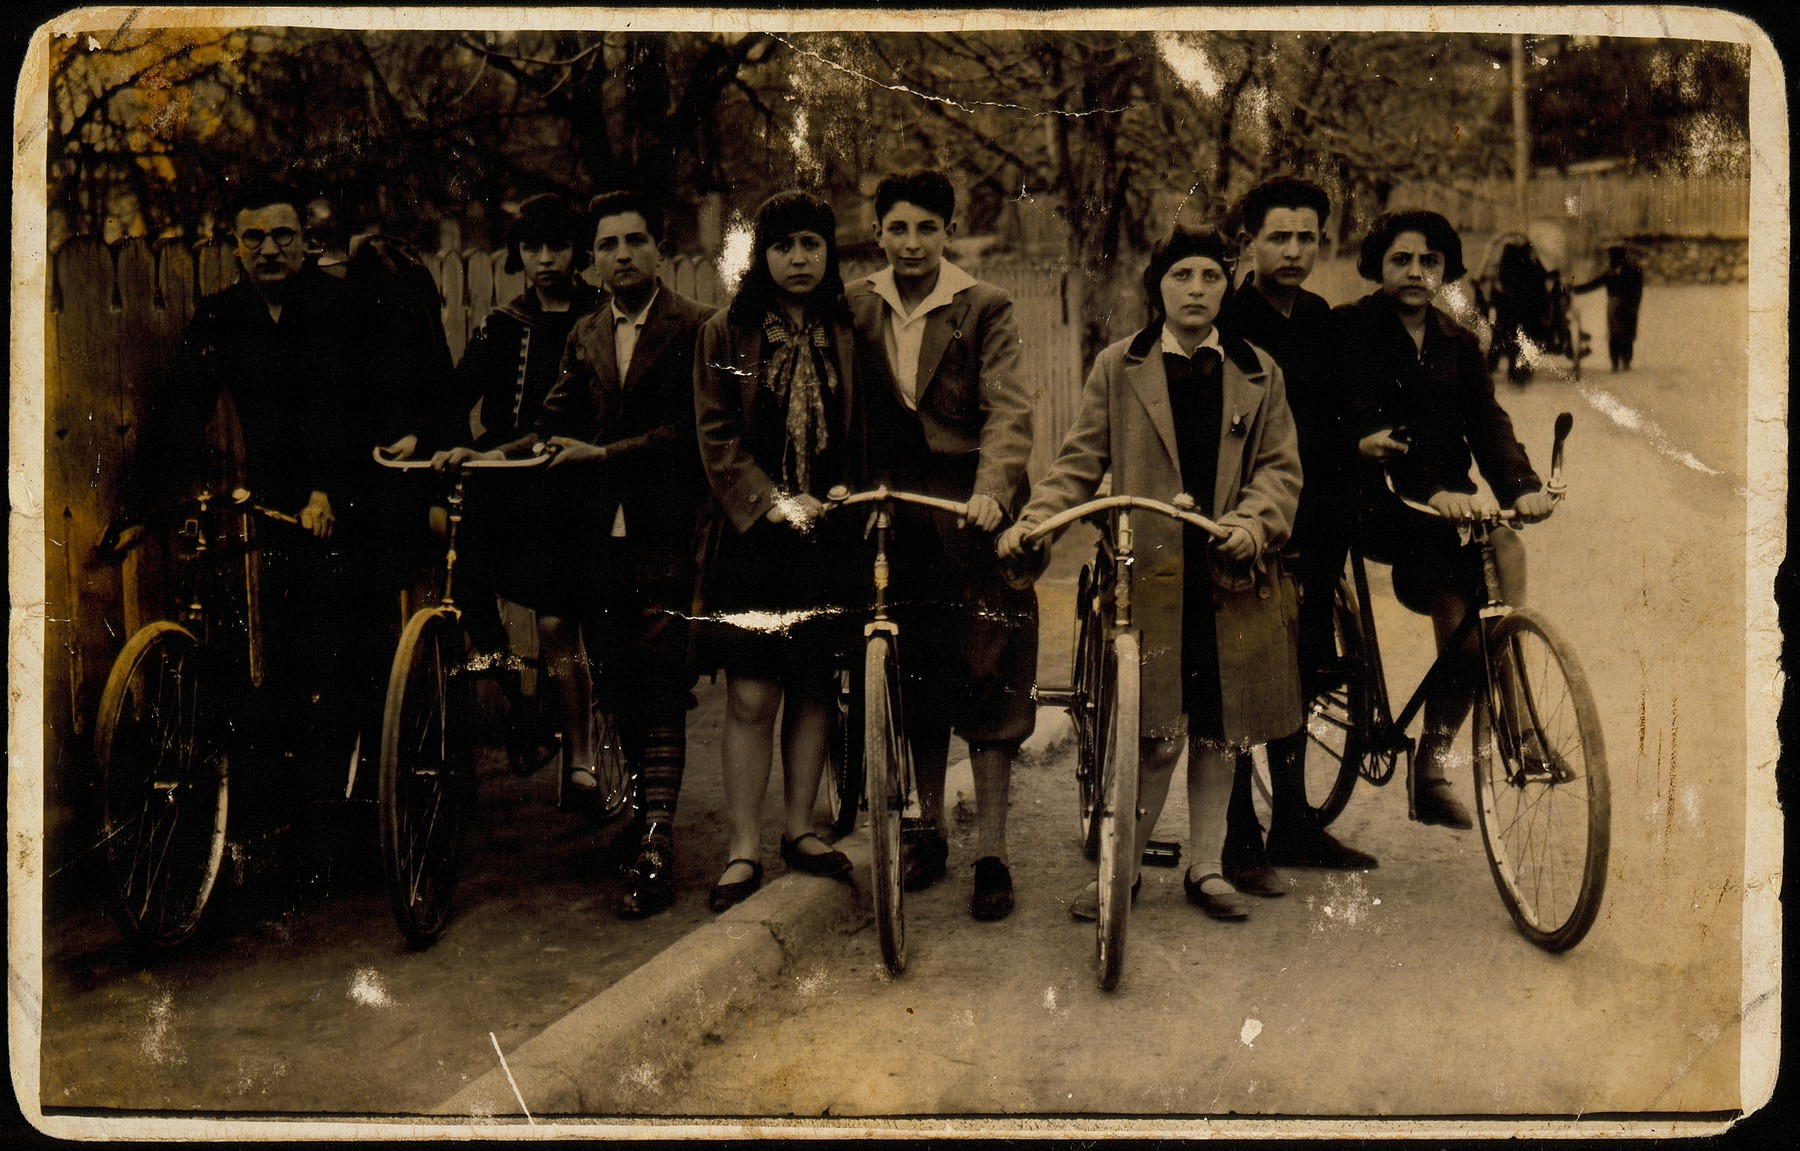 Zionist friends from surrounding towns enjoy a bicycle excursion to Eisiskes.